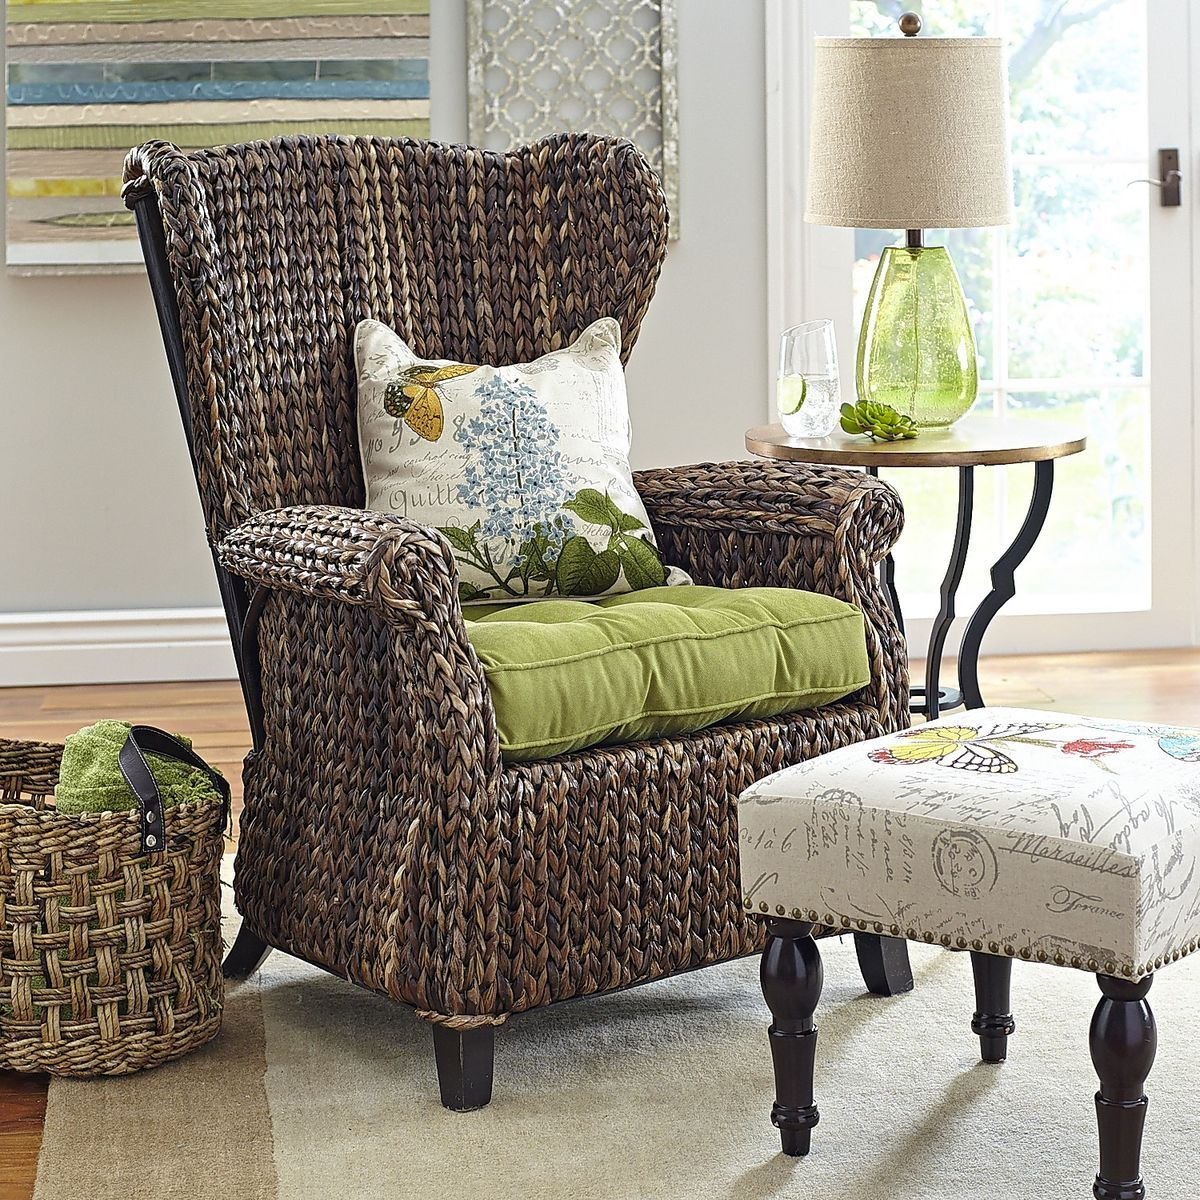 pier 1 living room rugs%0A Graciosa Wing Chair  Brown   Pier   Imports